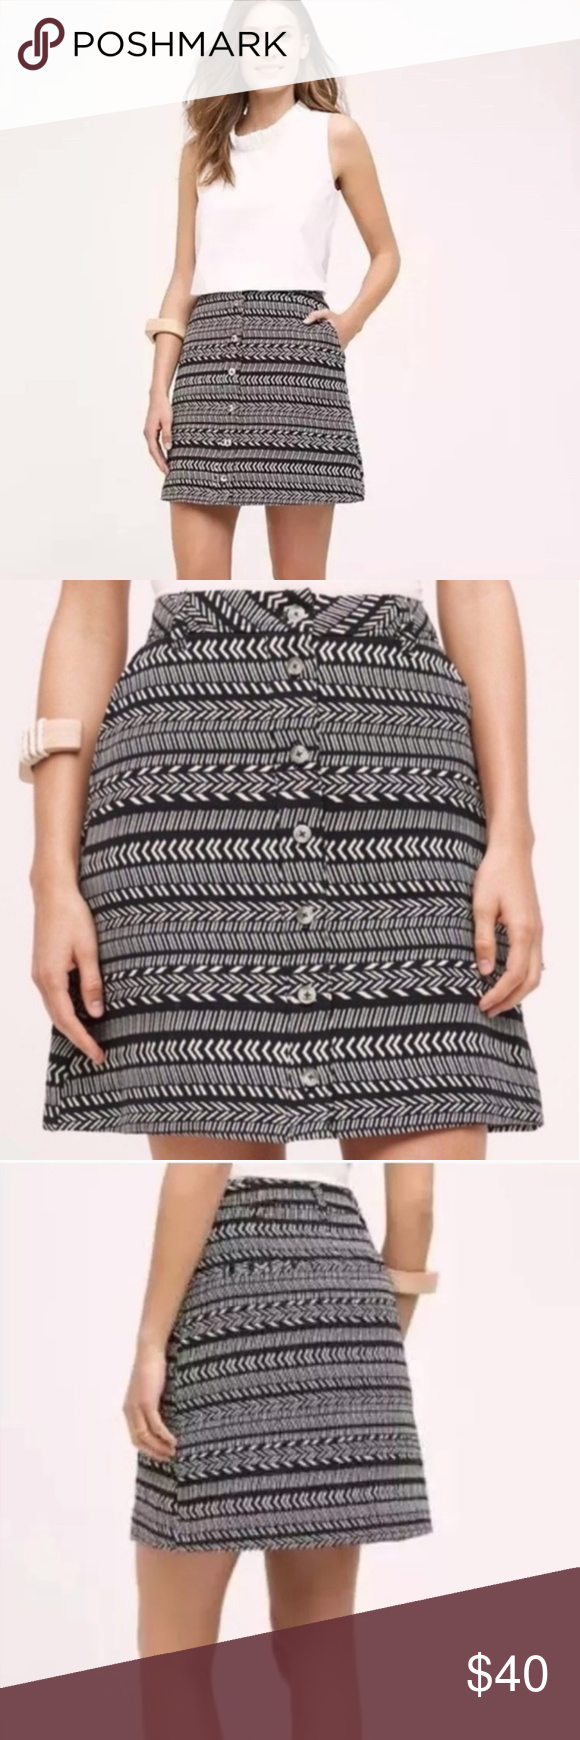 69510f8c83 Anthro's Maeve Tribal Button Skirt Adorable A-line button down tribal print  skirt from Anthropologie's